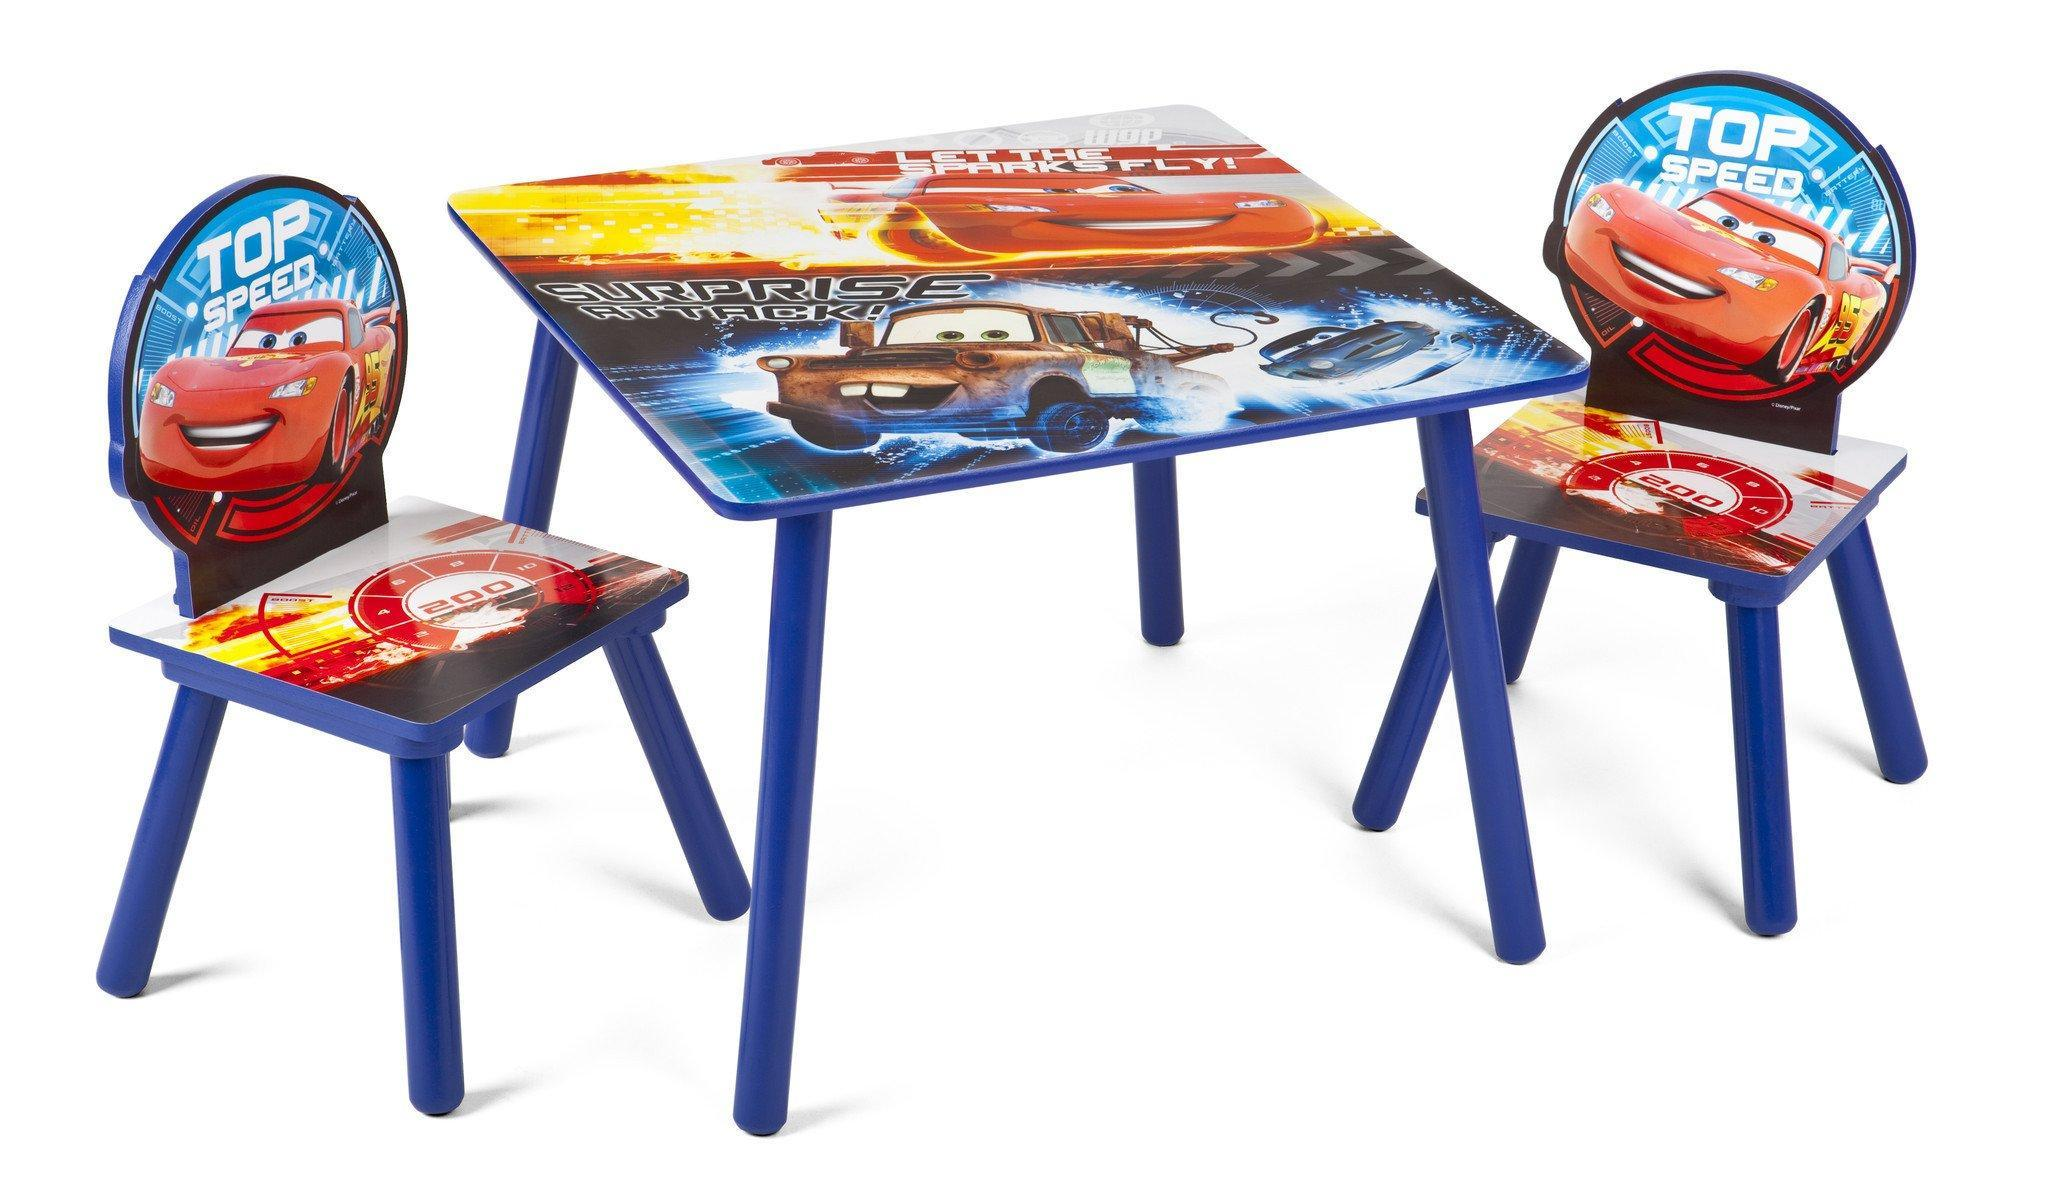 Delta Children Cars Table & Chair Set, Style 1 a1a